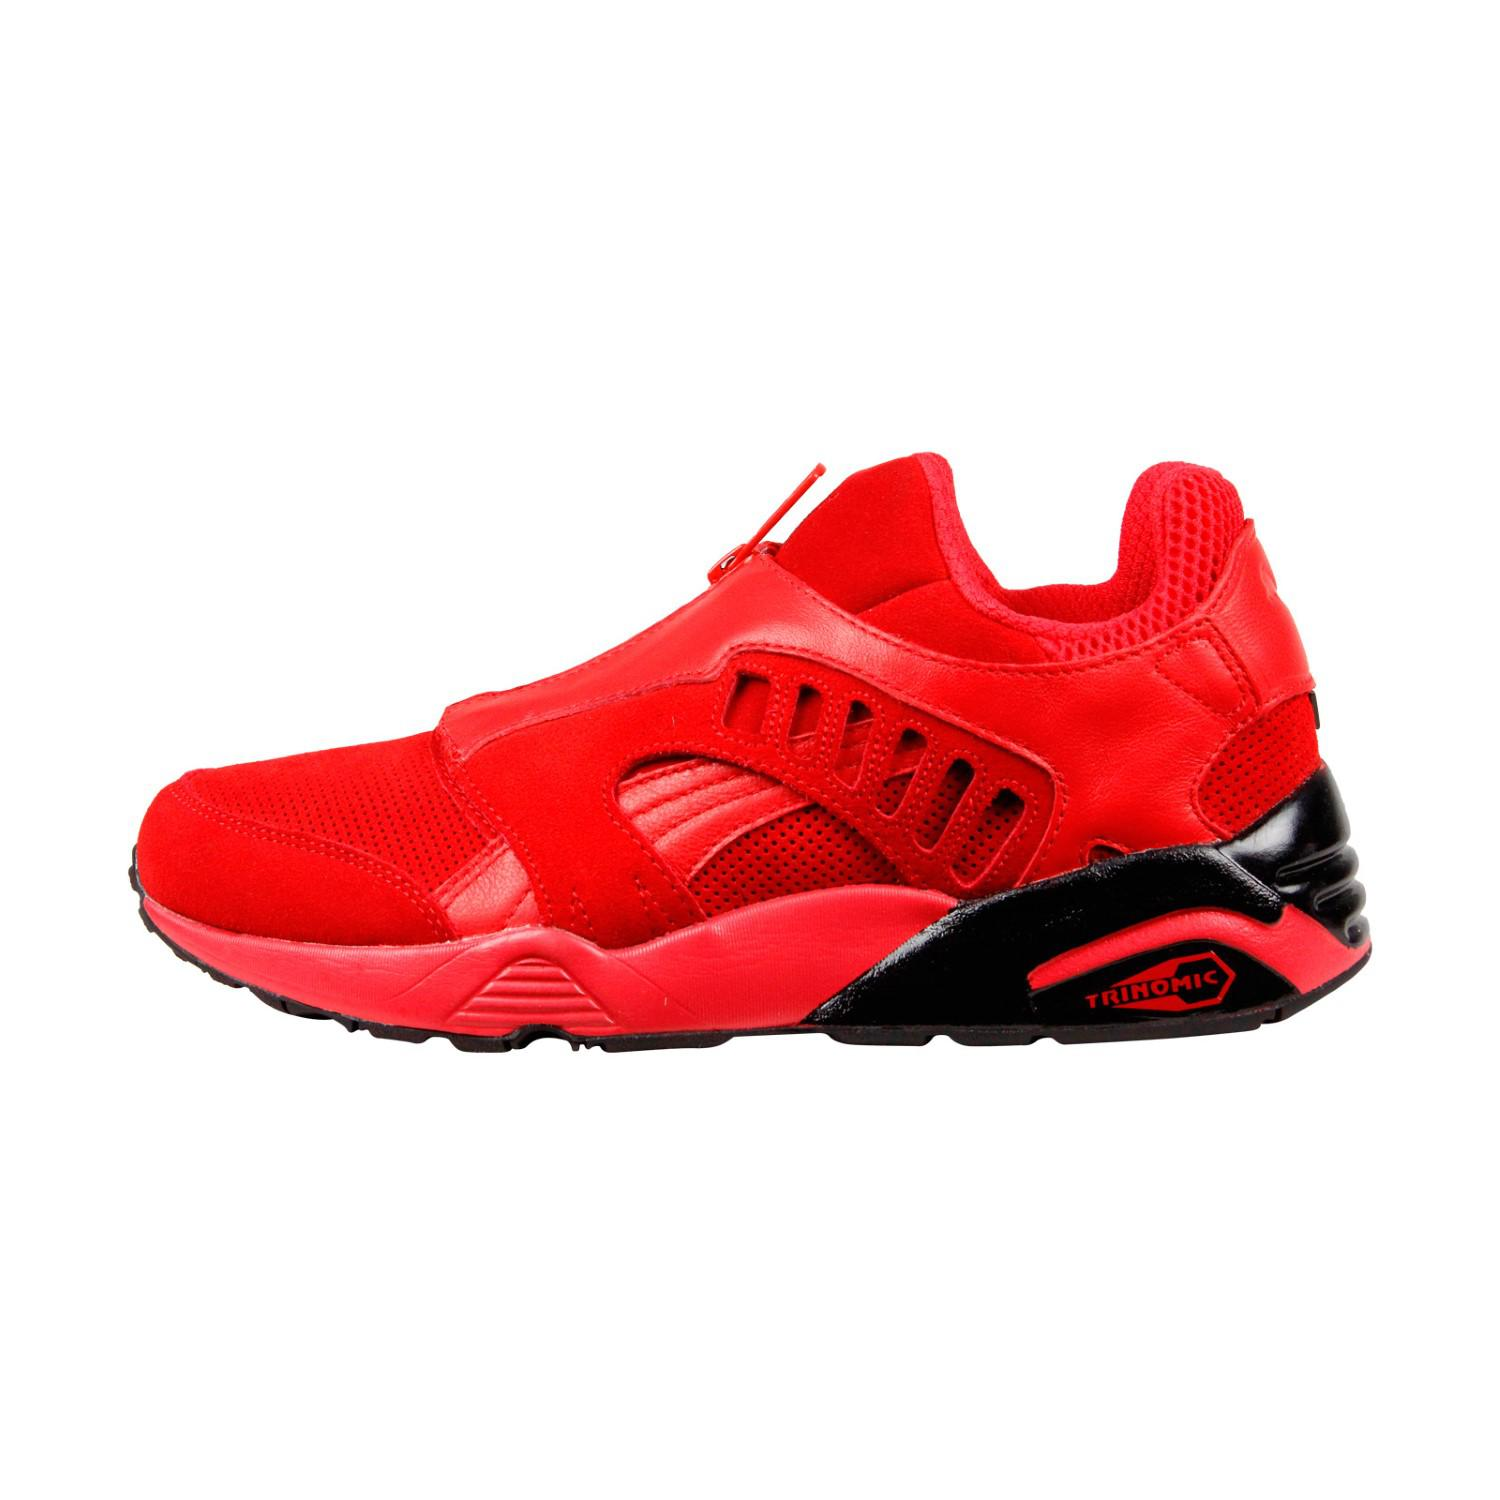 362338663b2 Lyst - PUMA Trinomic Zip High Risk Red Black Mens Lace Up Sneakers ...